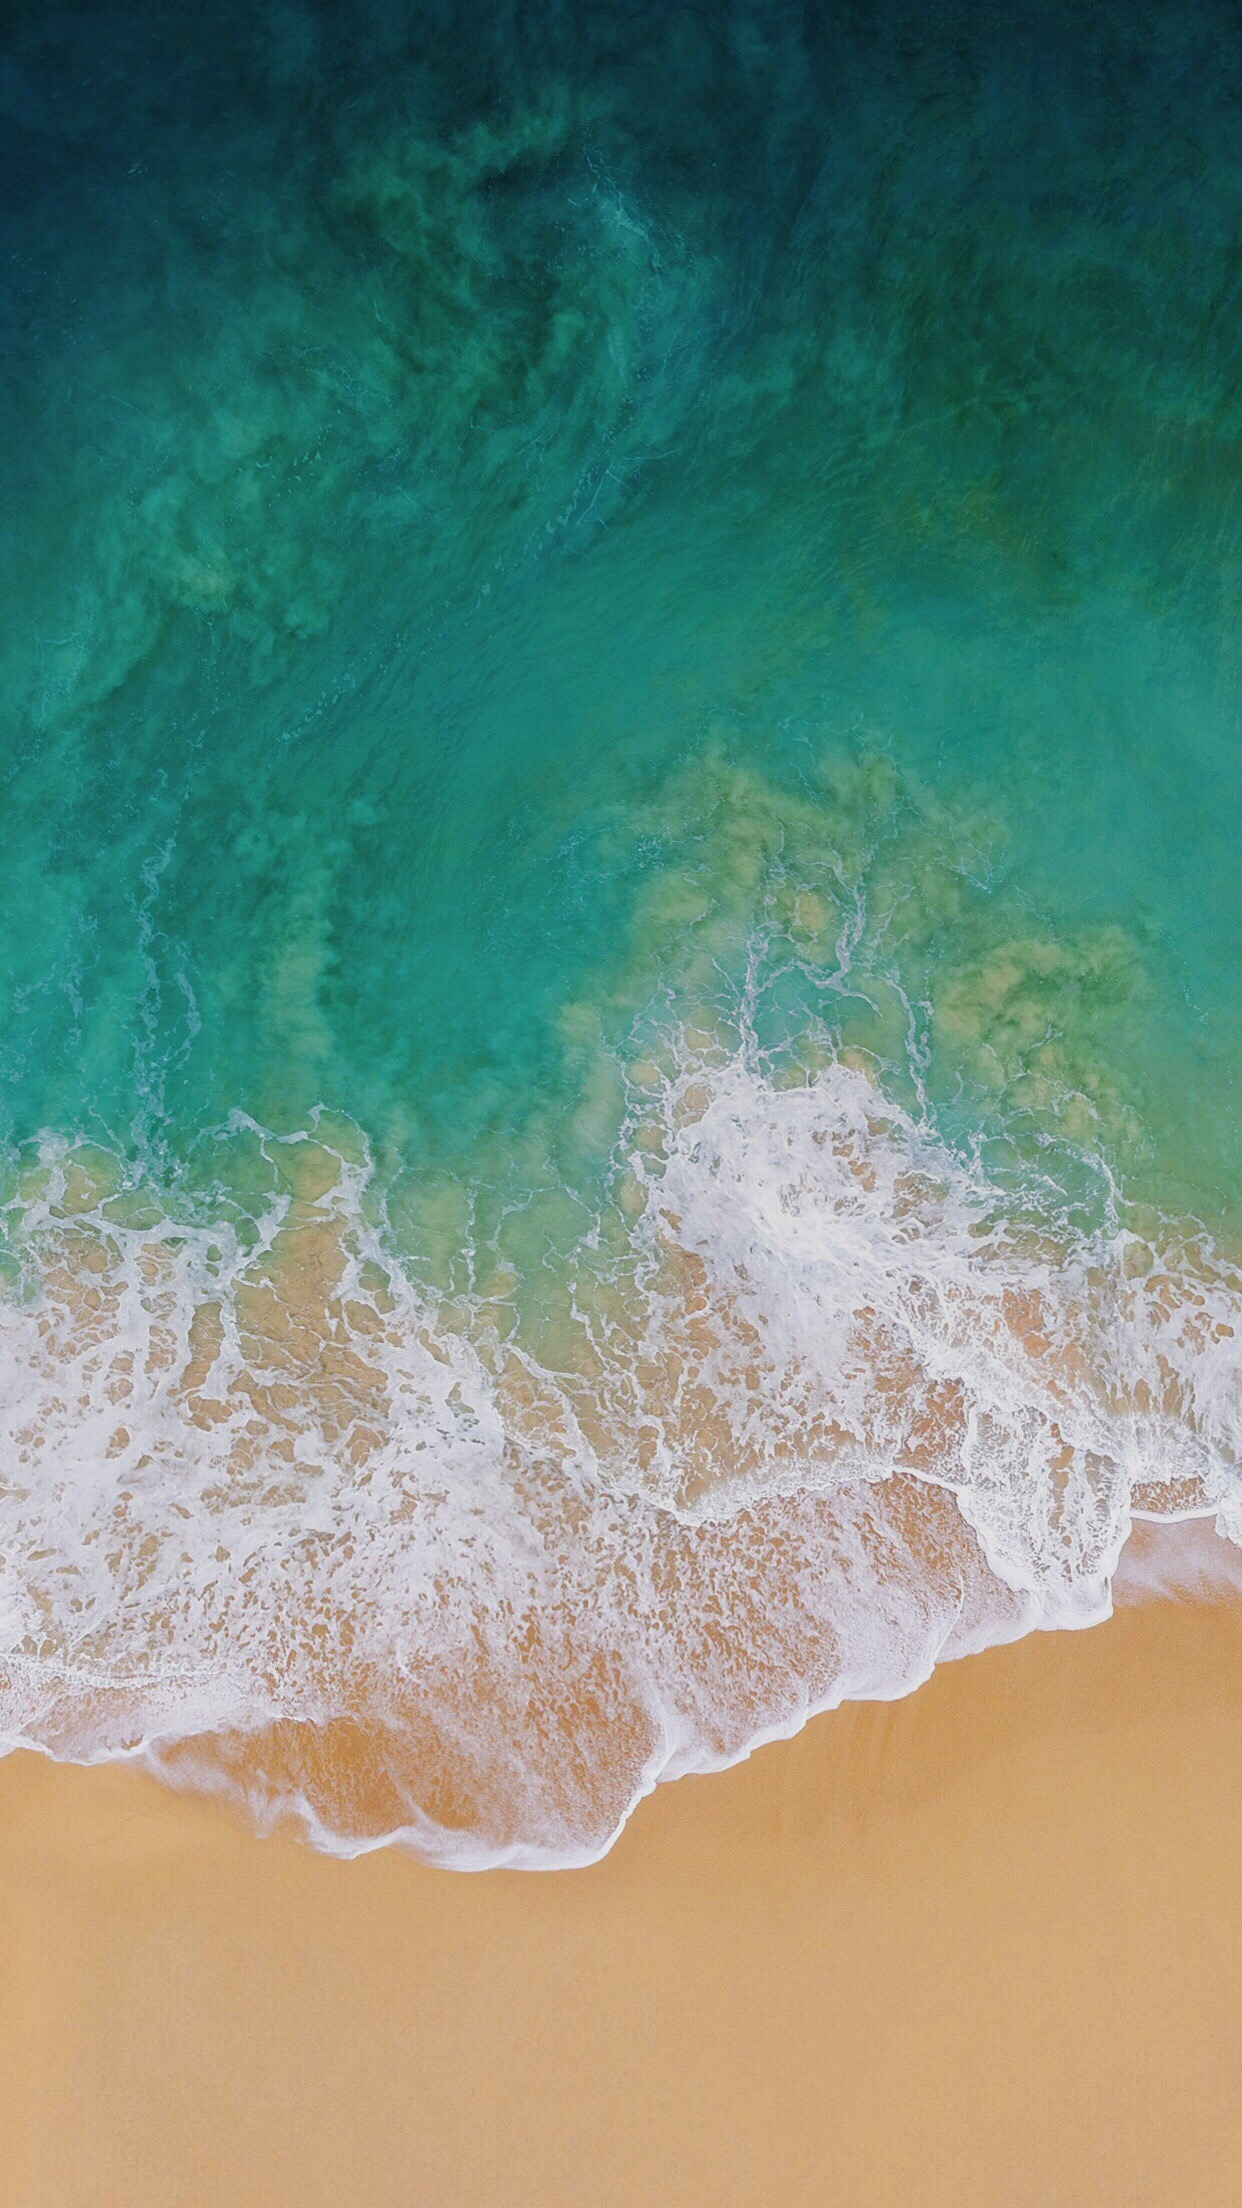 Ios 11 Introduces Many New Features And Improvements